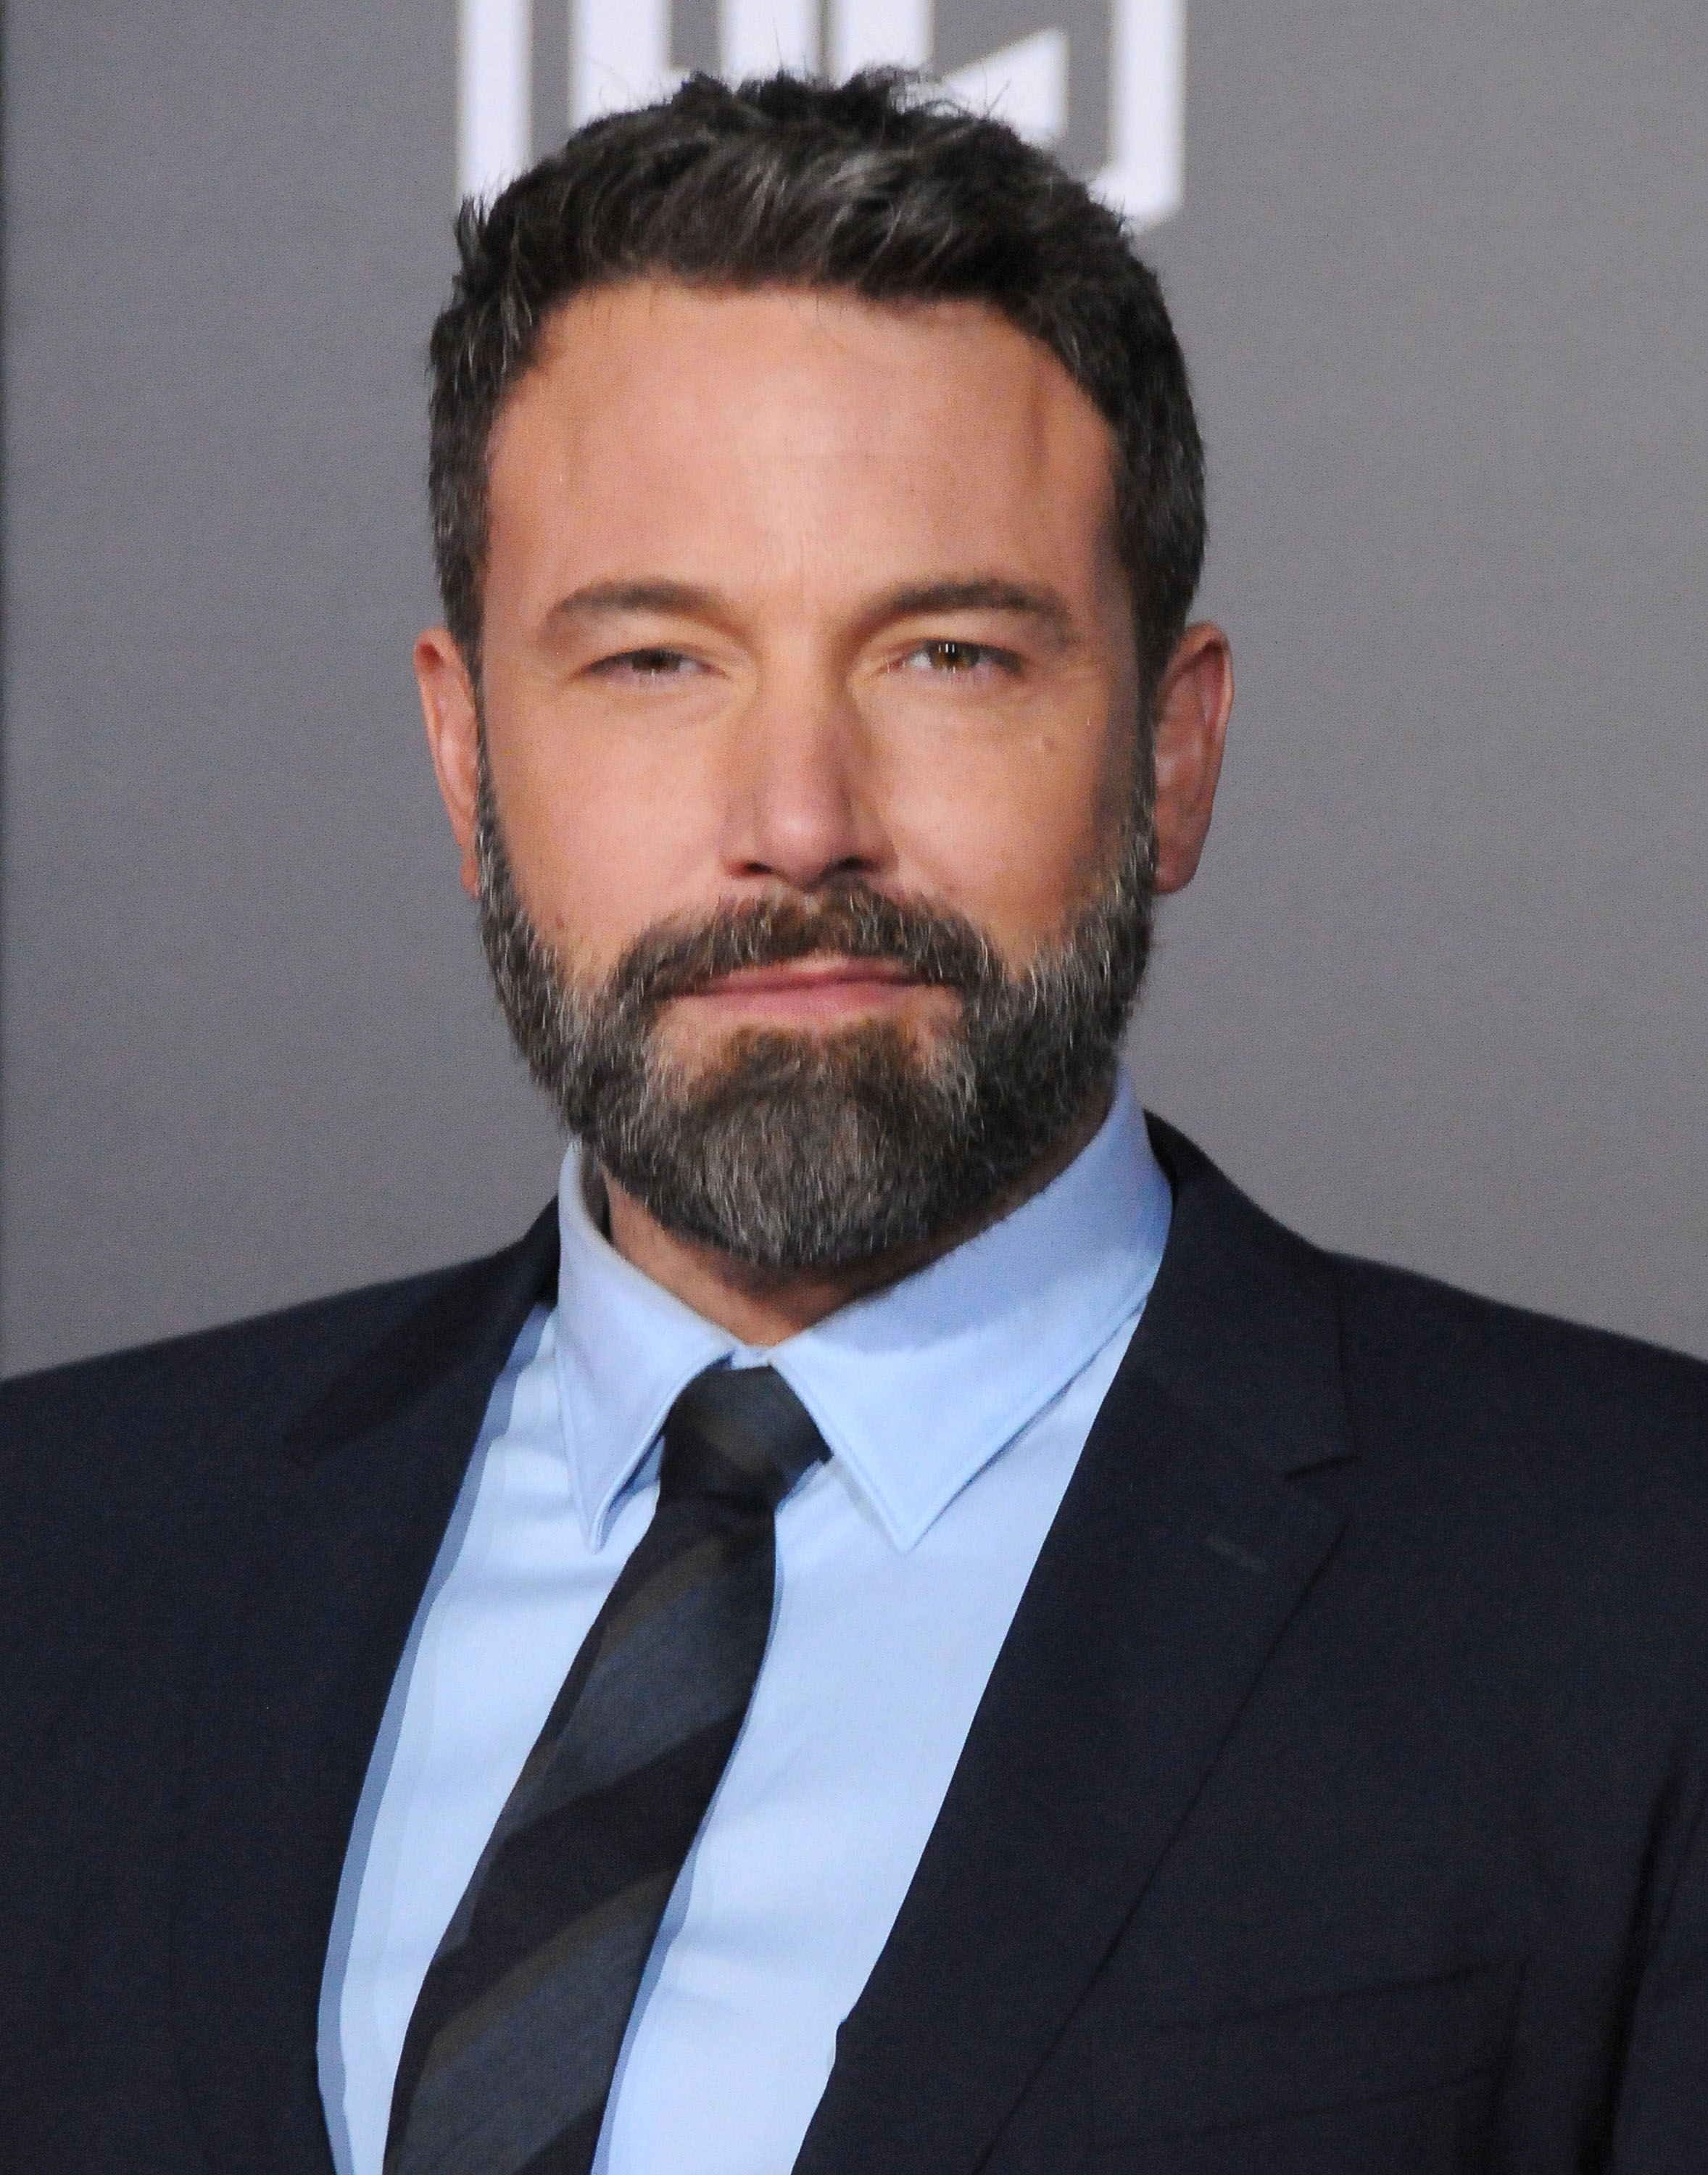 Ben Affleck attends the premiere of Warner Bros. Pictures' 'Justice League' at Dolby Theatre on November 13, 2017. | Source: Getty Images